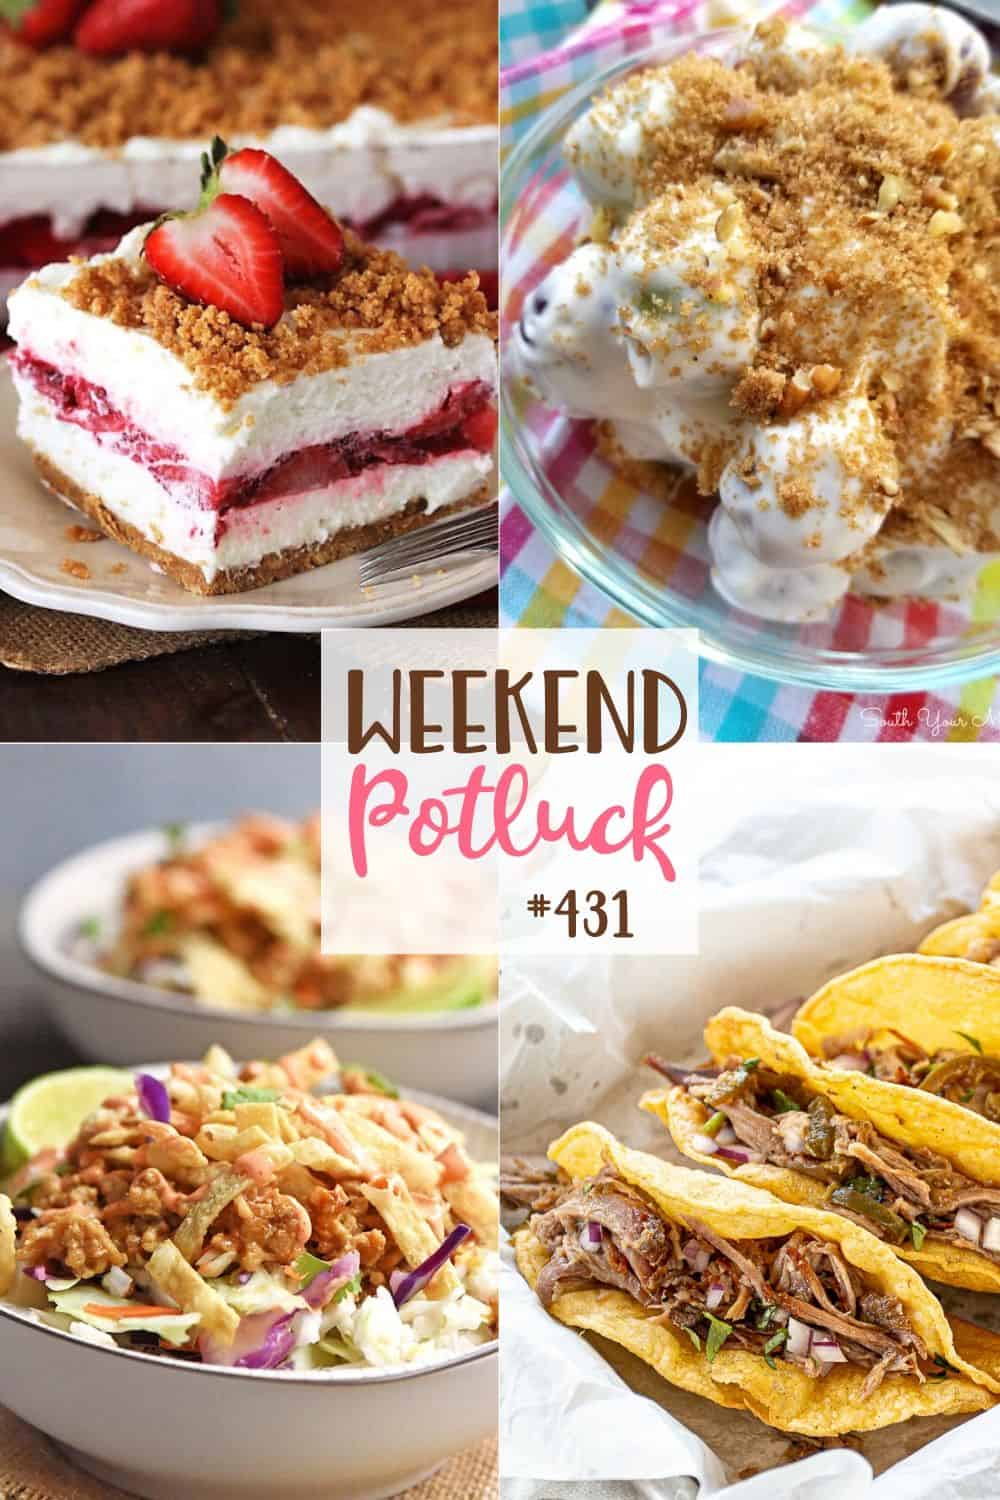 Weekend Potluck featured recipes include: Fresh Strawberry Yum Yum, Chicken Wonton Bowl, Crazy Delicious Pork Tacos and Grape Salad